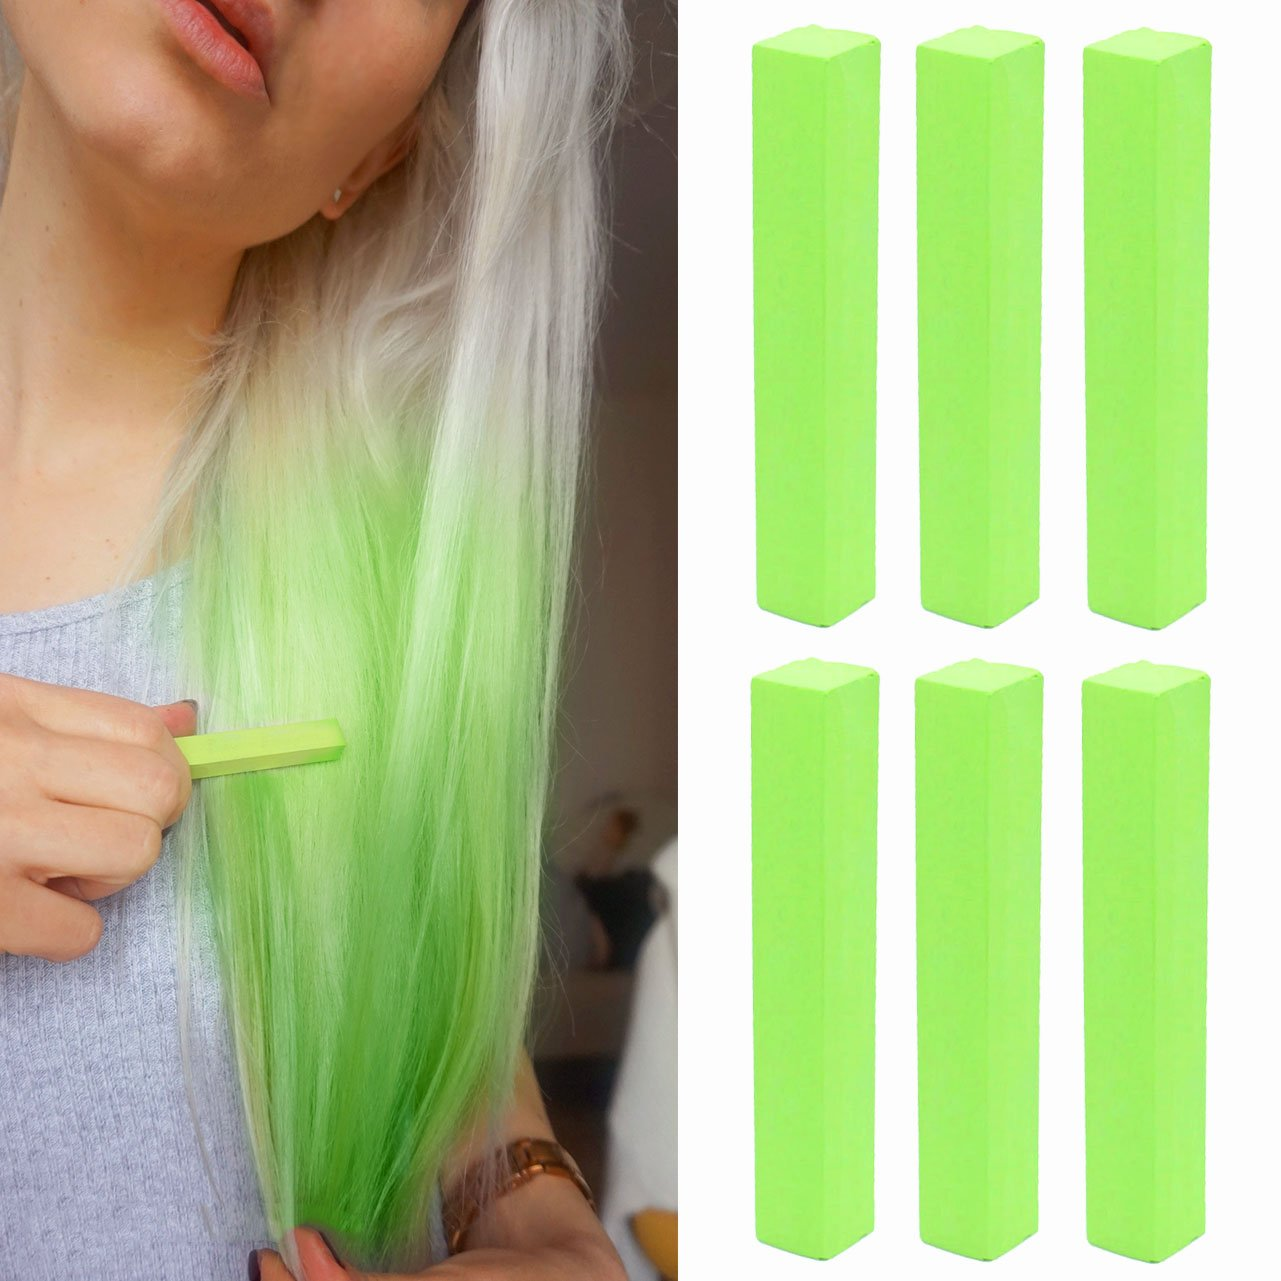 Buy Crazy Neon Green Hair Dye Green Apple Temporary Hair Chalk With Shades Of Green Set Of 6 Hair Dye Color Your Hair Neon Green In Seconds With Temporary